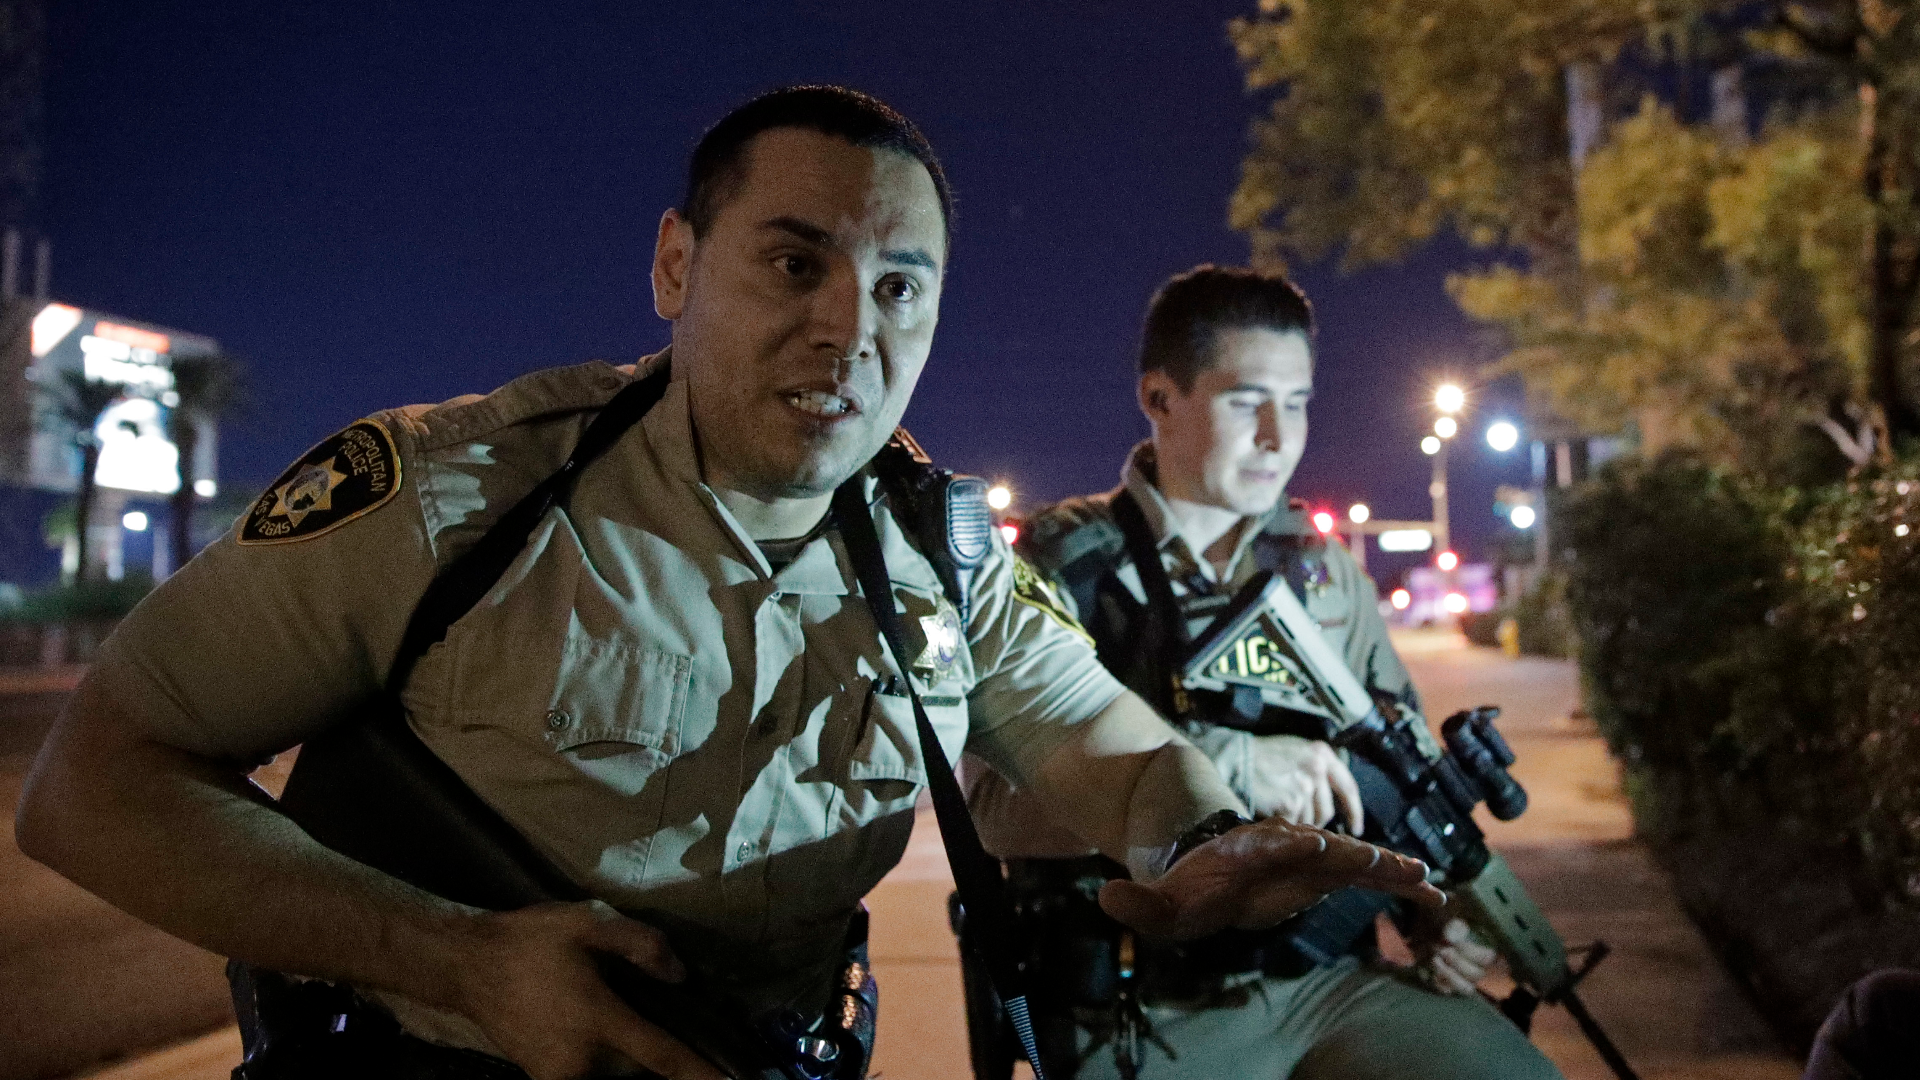 At least 20 dead, 100 injured at shooting on Las Vegas Strip, police say